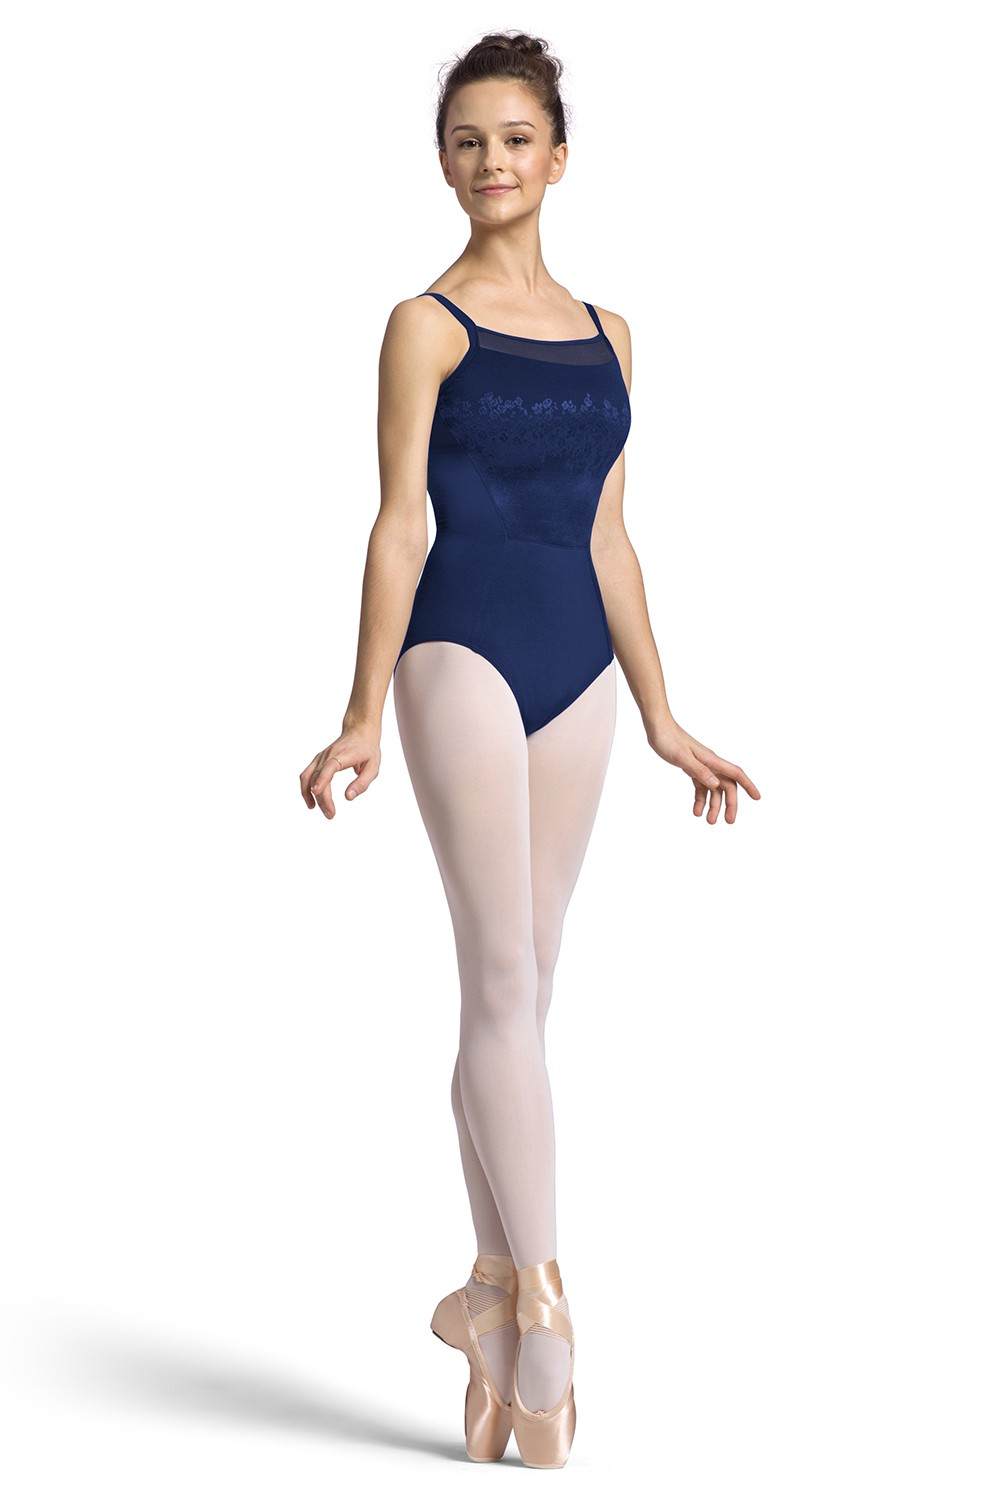 Fenile Women's Dance Leotards